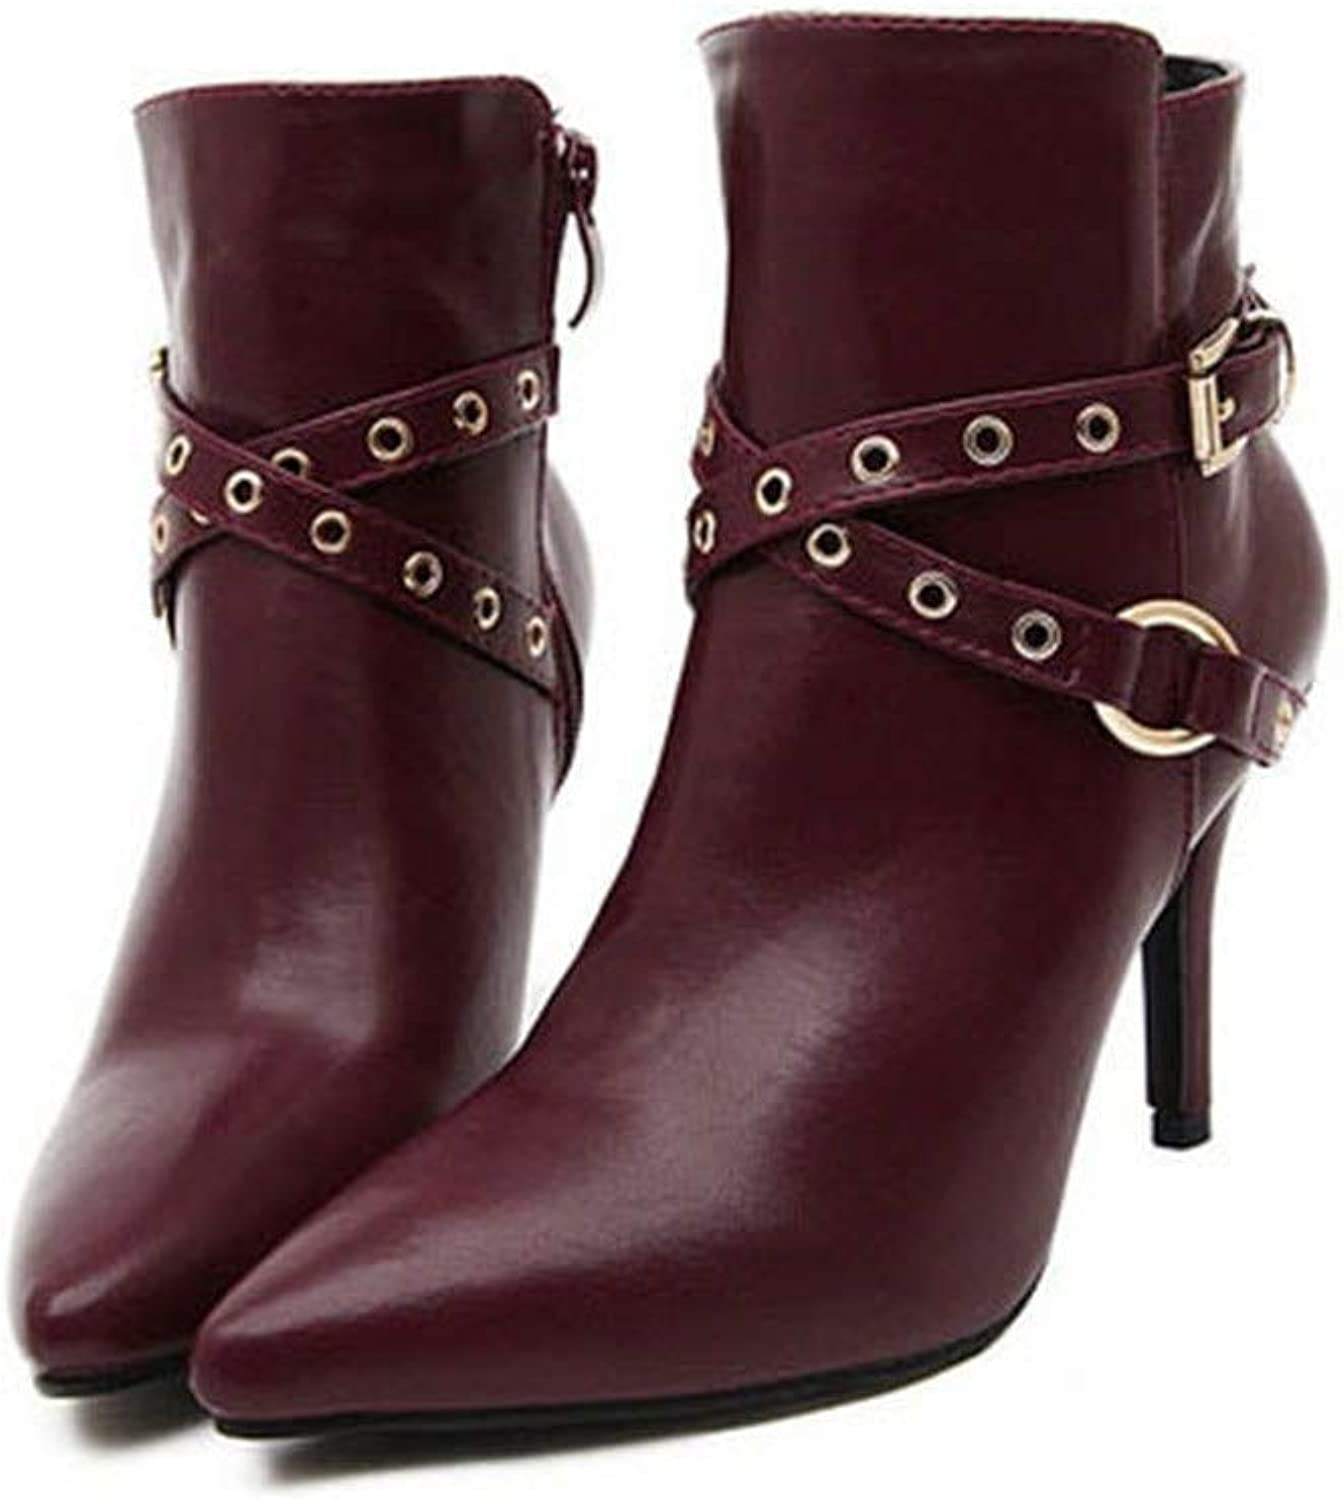 Winter Ladies Pointed Boots Belt Buckle Large Size PU Leather Warm Imitation Leather Lining